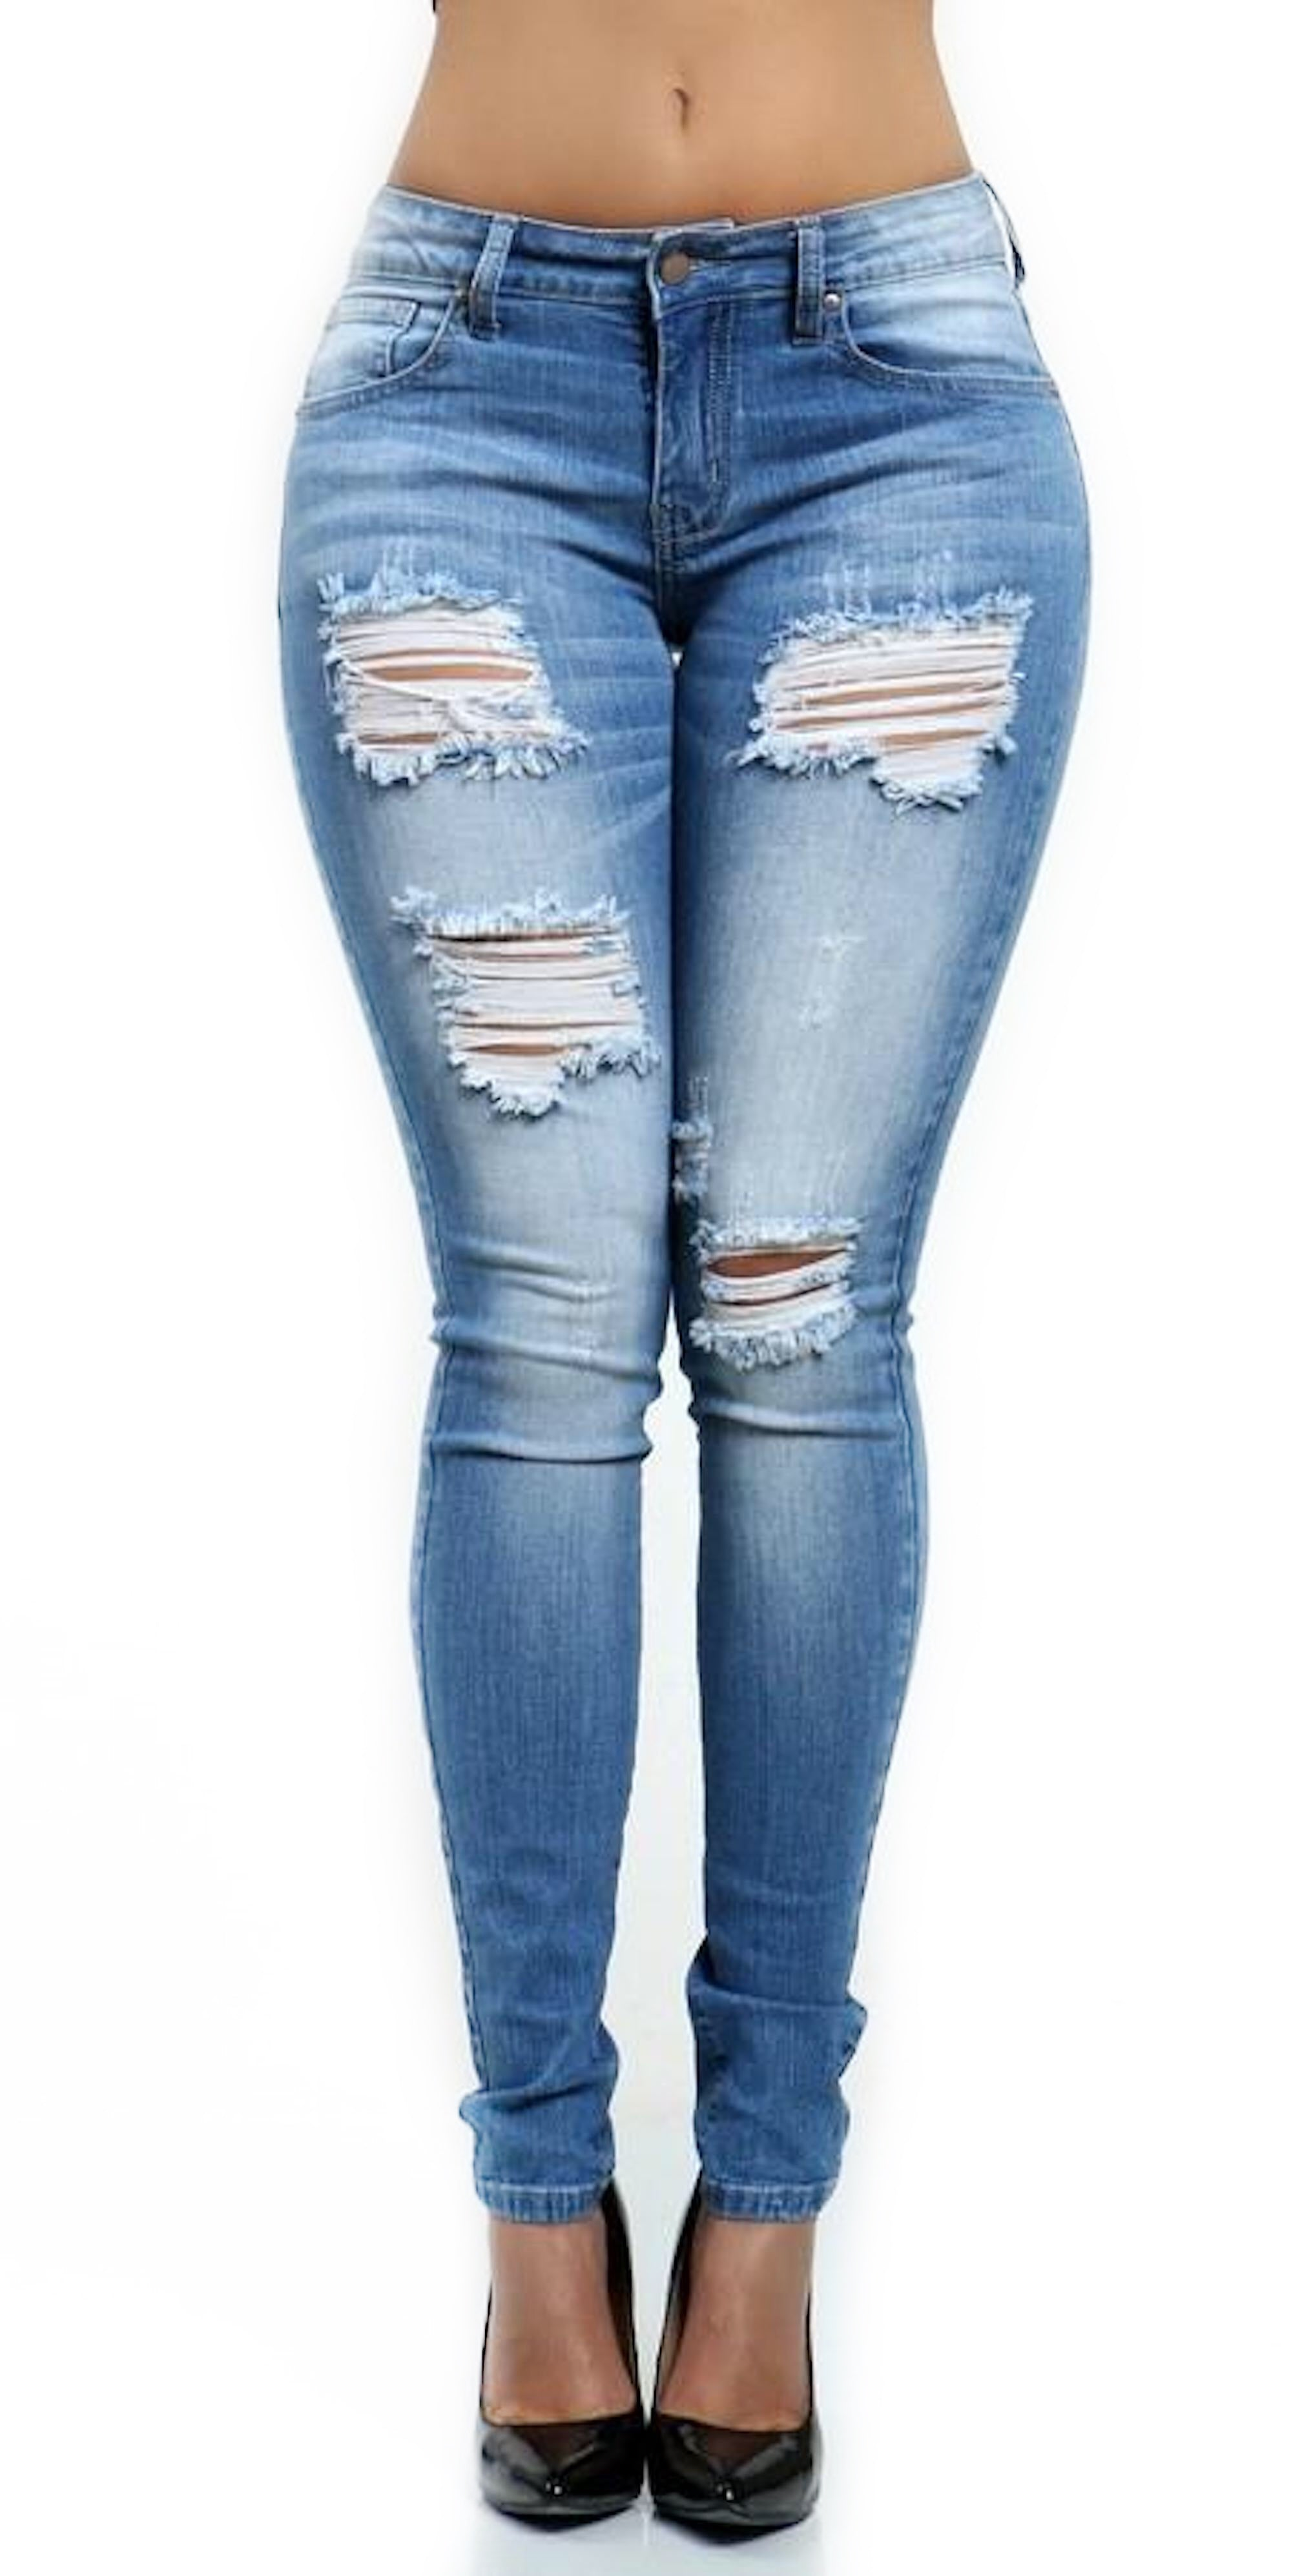 mid rise skinny jeans ripped pants blue washed out fashion clothing woman trending style